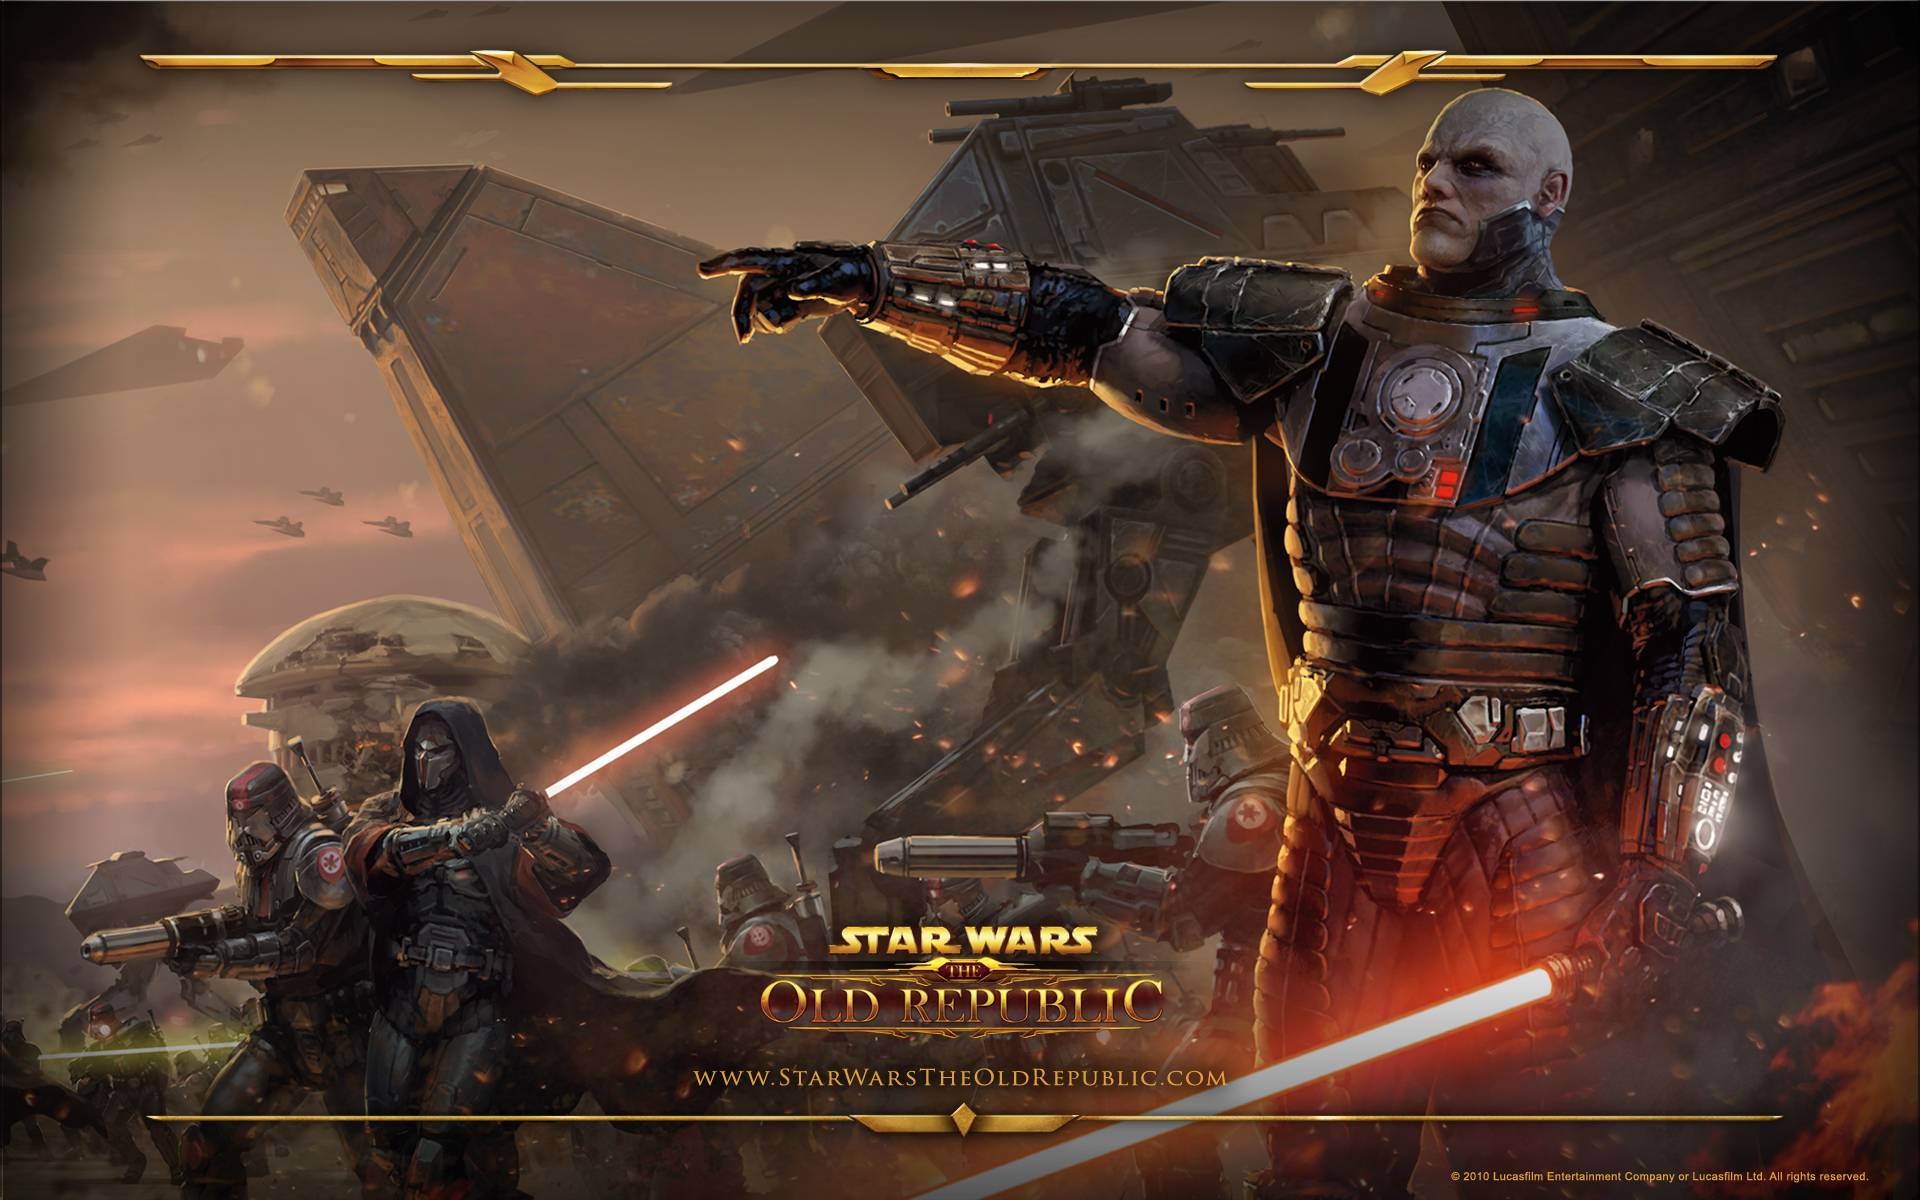 Star Wars The Old Republic Star Wars The Old Republic 1920x1200